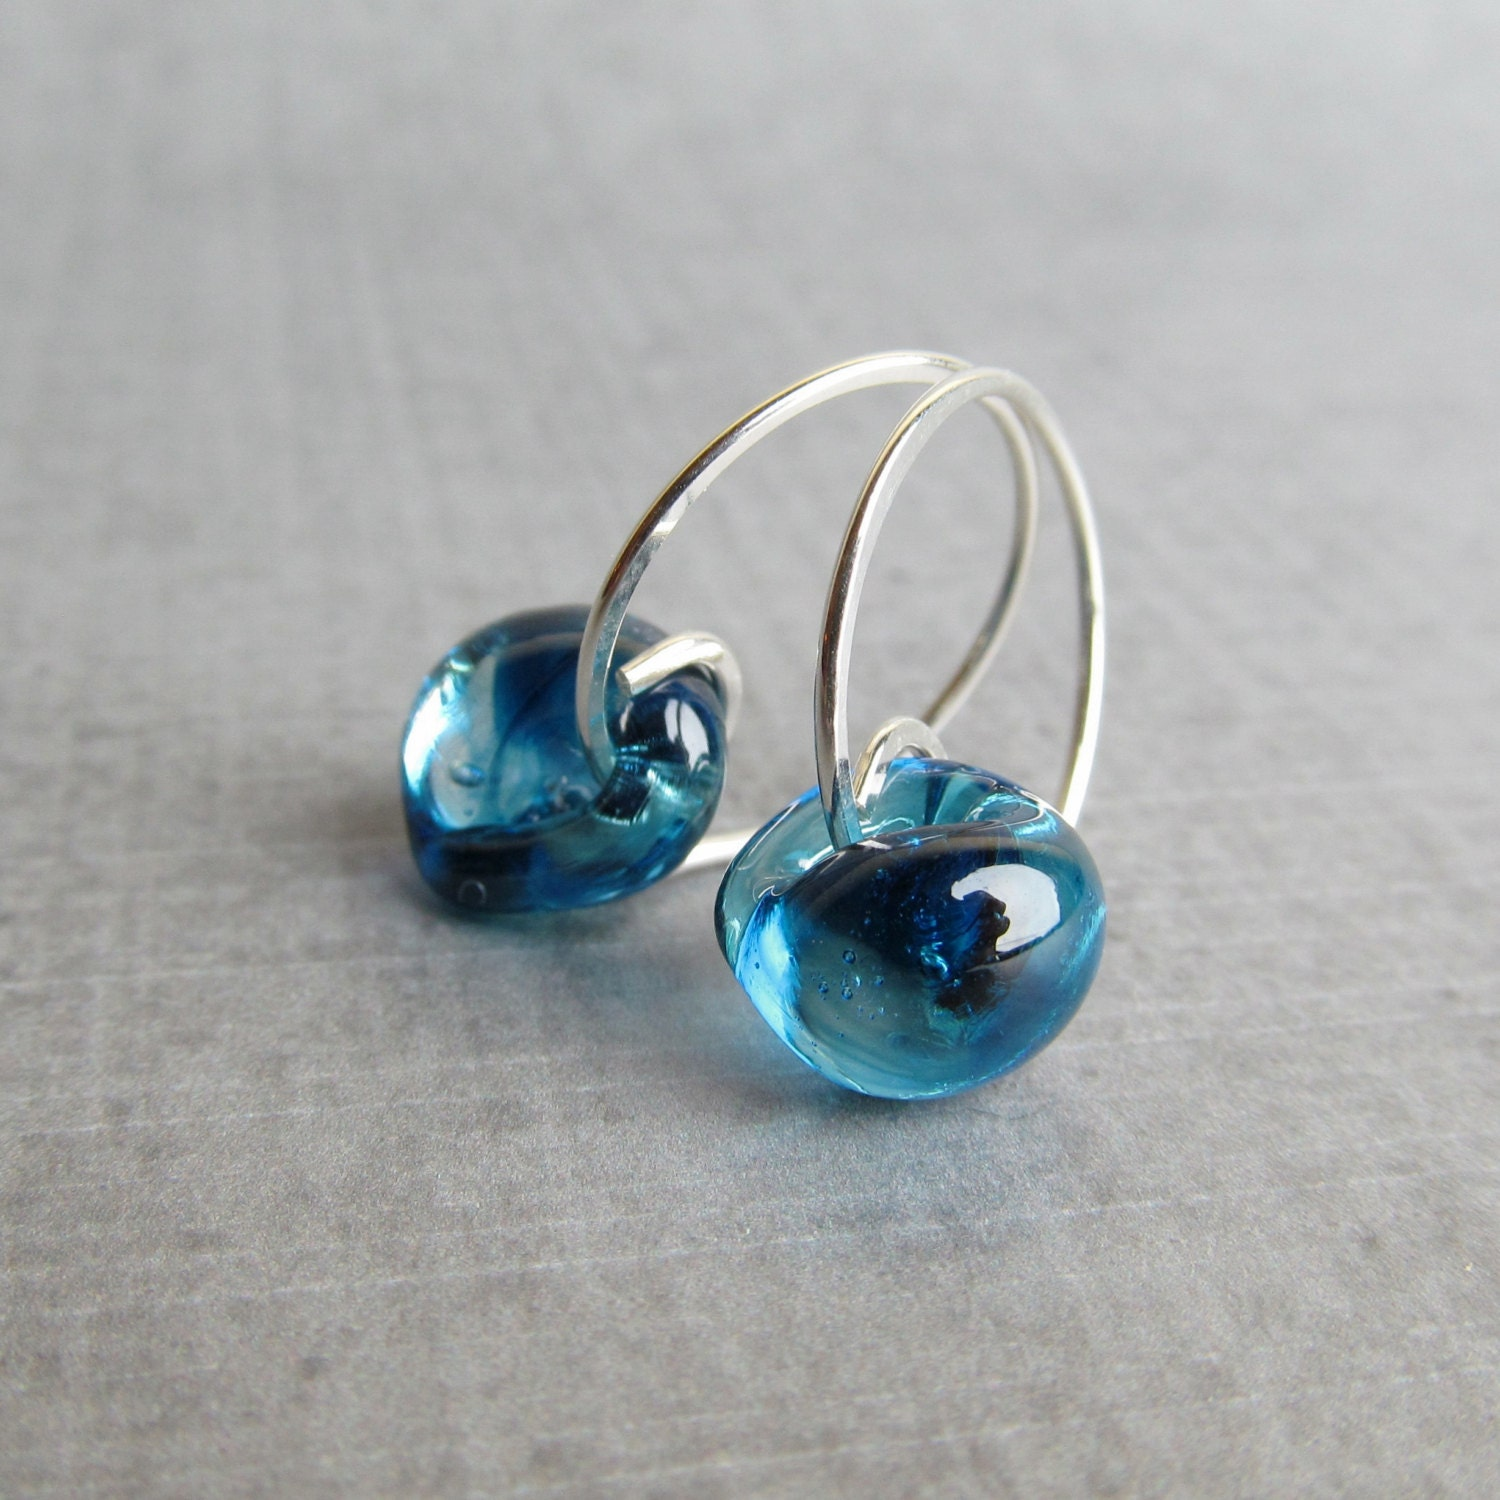 Small Blue Earrings: Blue Hoop Earrings Small Earrings Blue Earrings Blue By